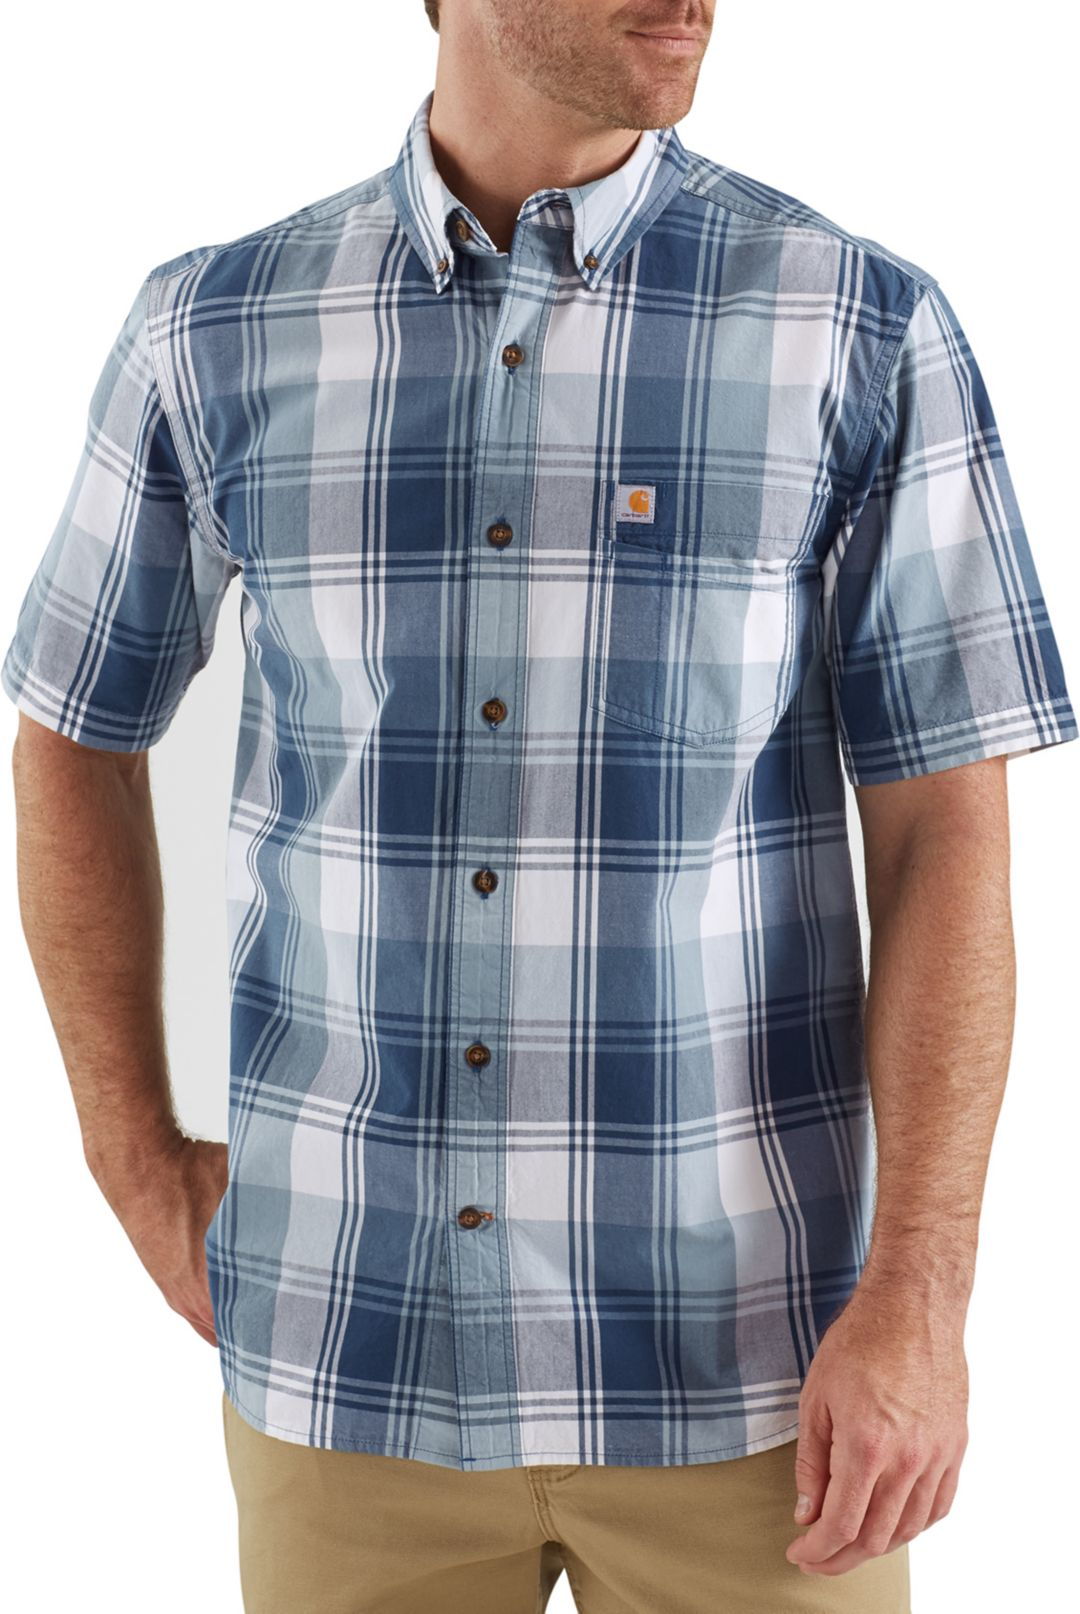 order how to buy online retailer Carhartt Men's Essential Plaid Button Down Short Sleeve Shirt